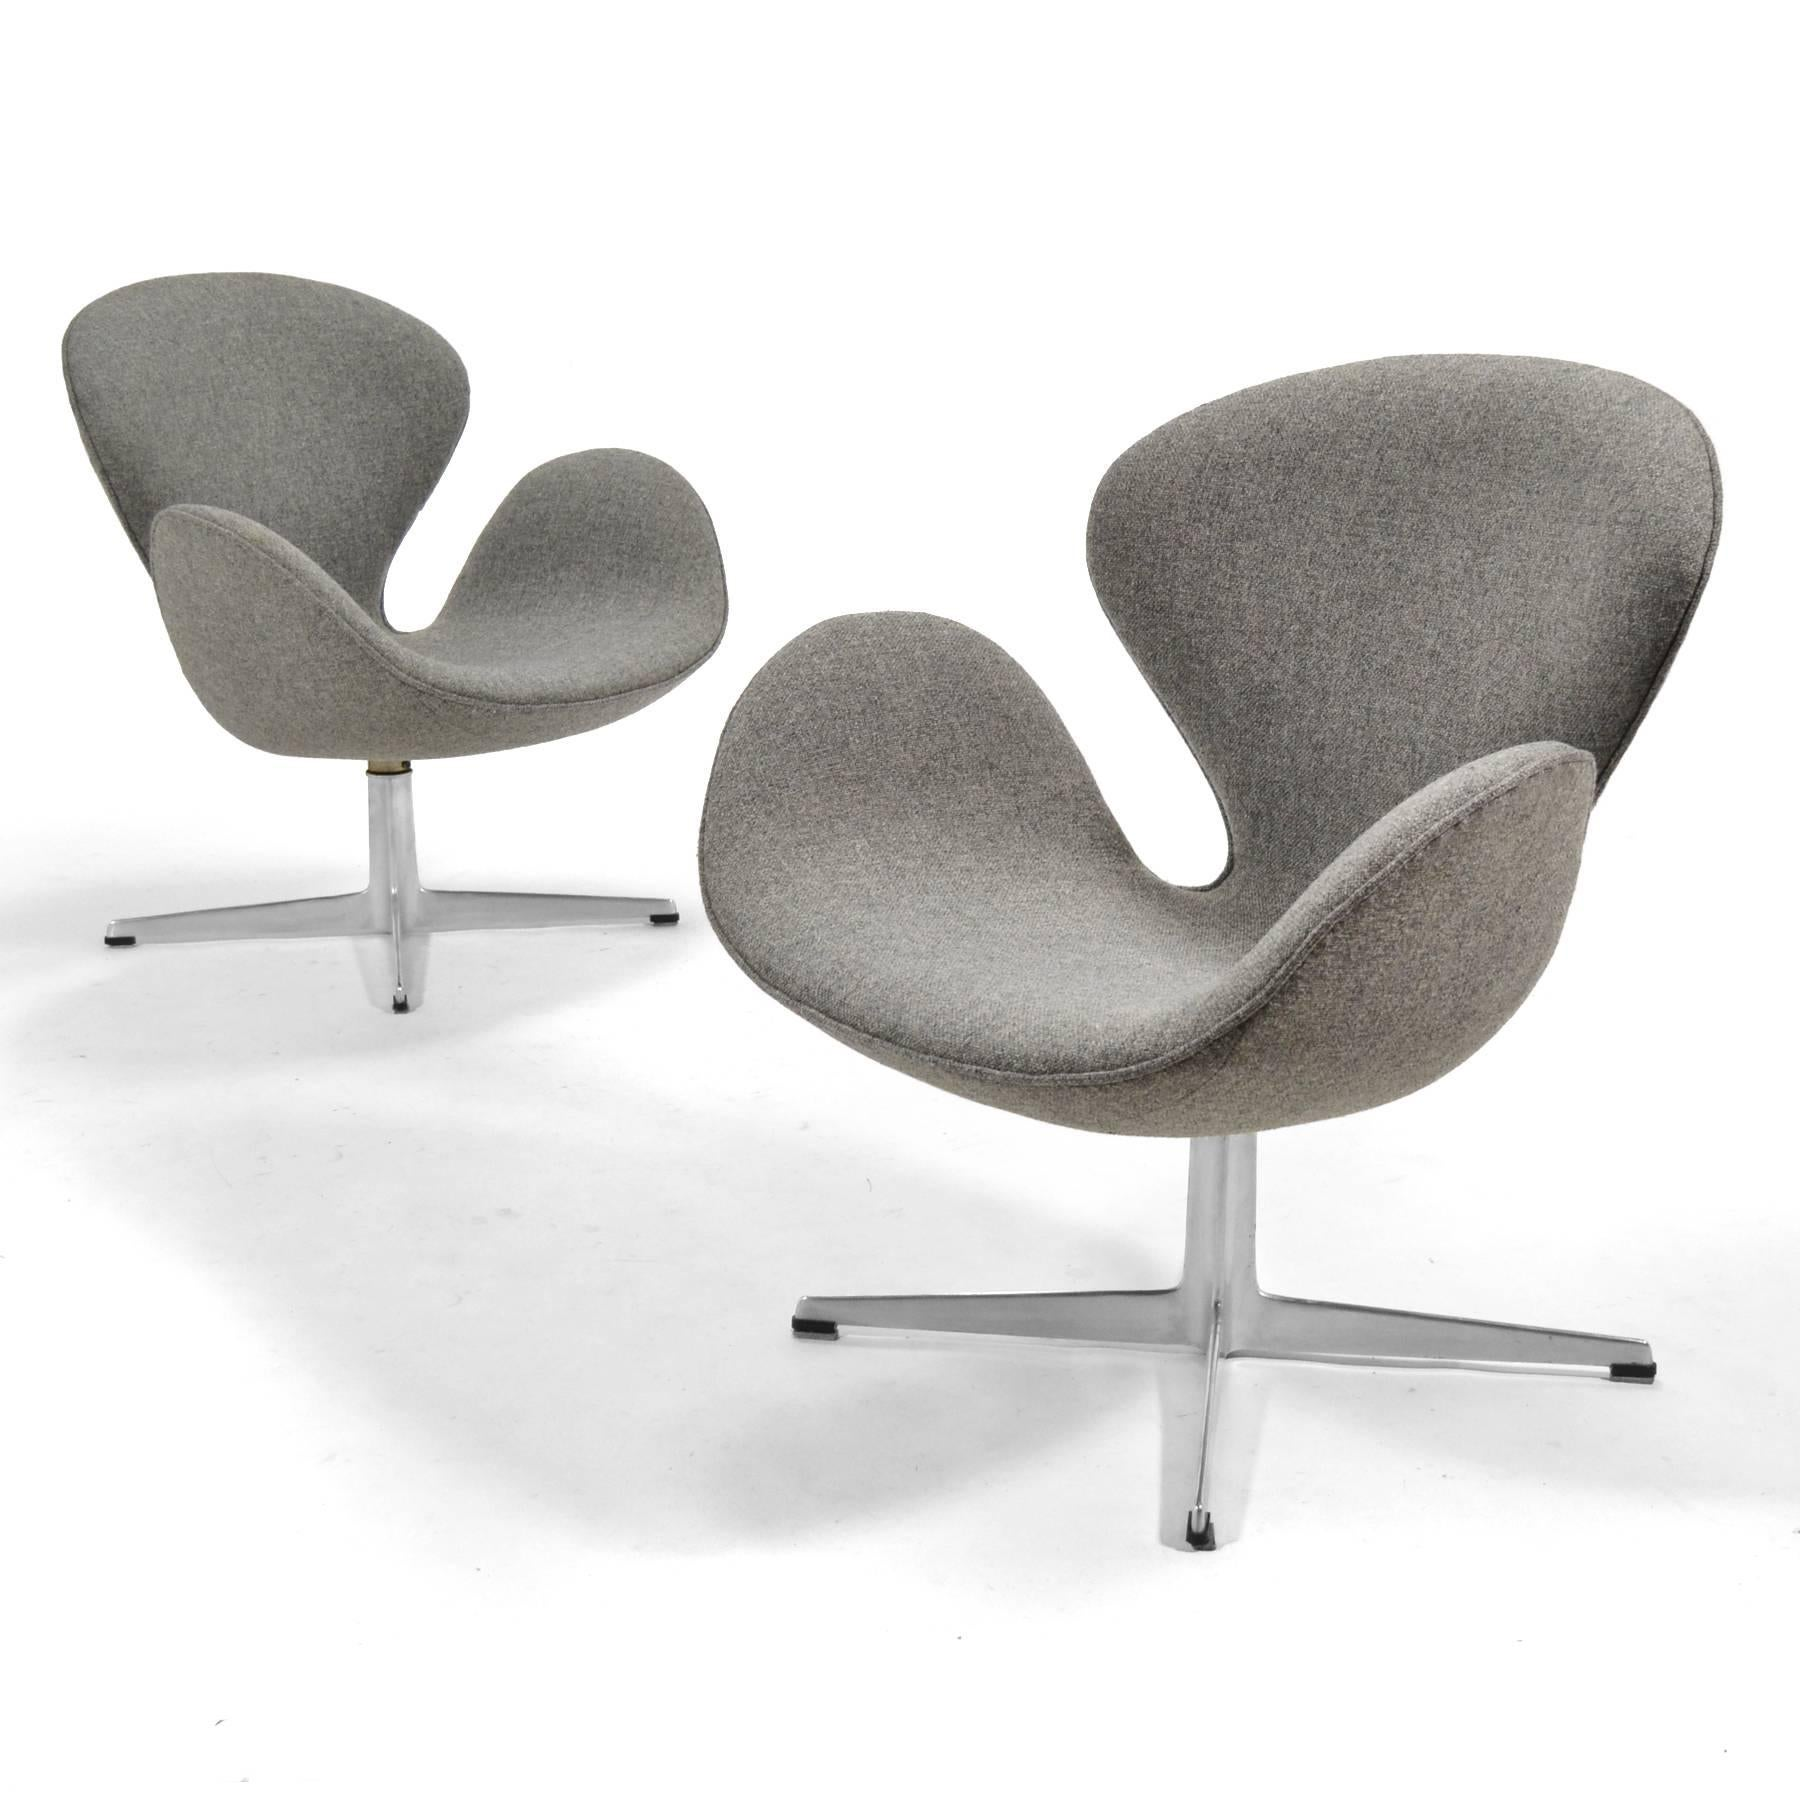 Arne Jacobsen Pair Of Swan Chairs By Fritz Hansen For Sale 1